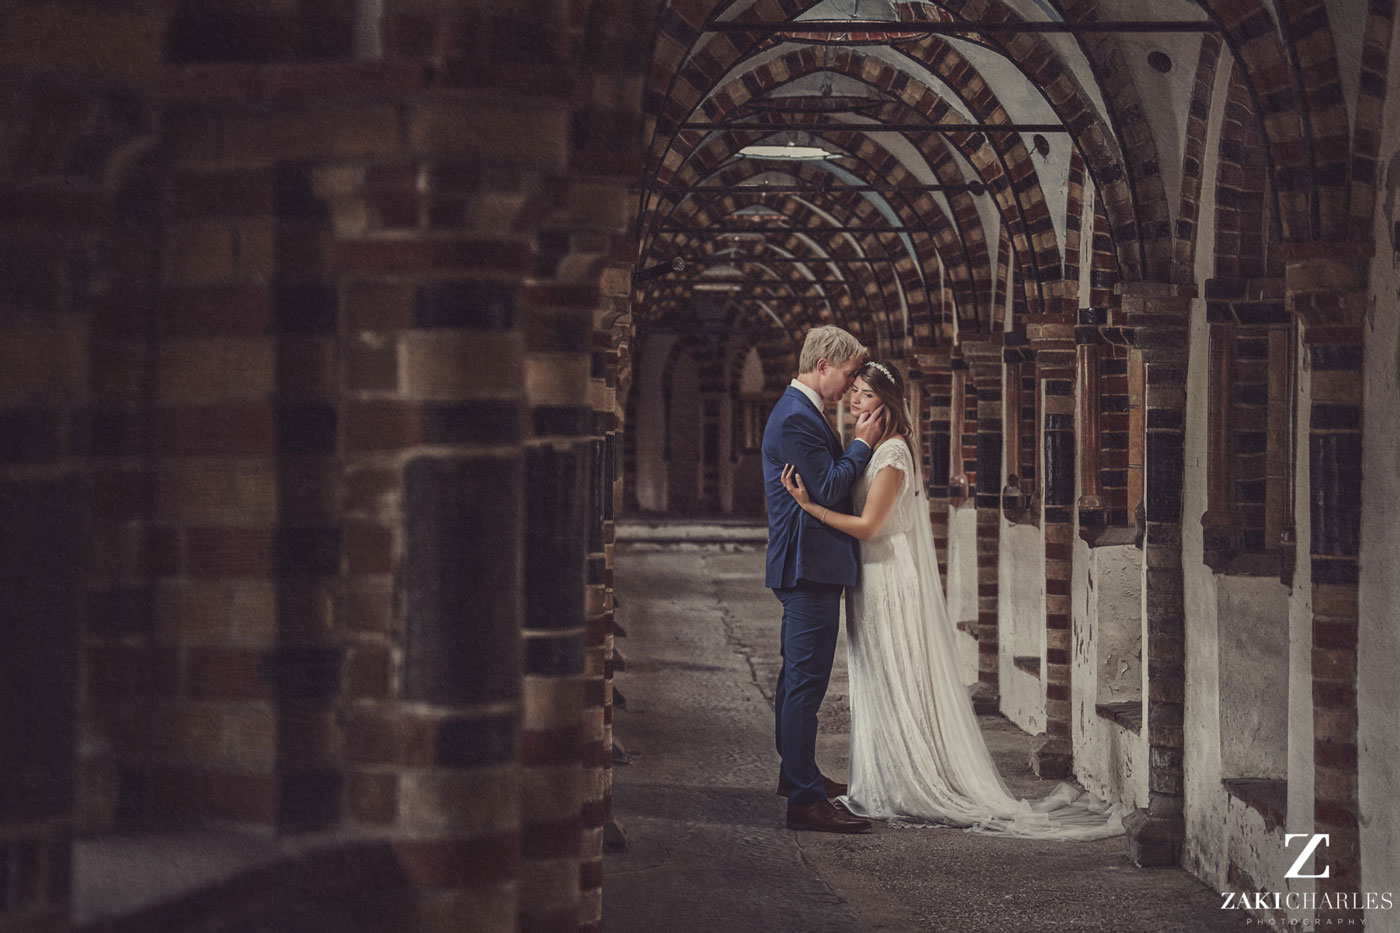 Wedding photoshoot in Oxford